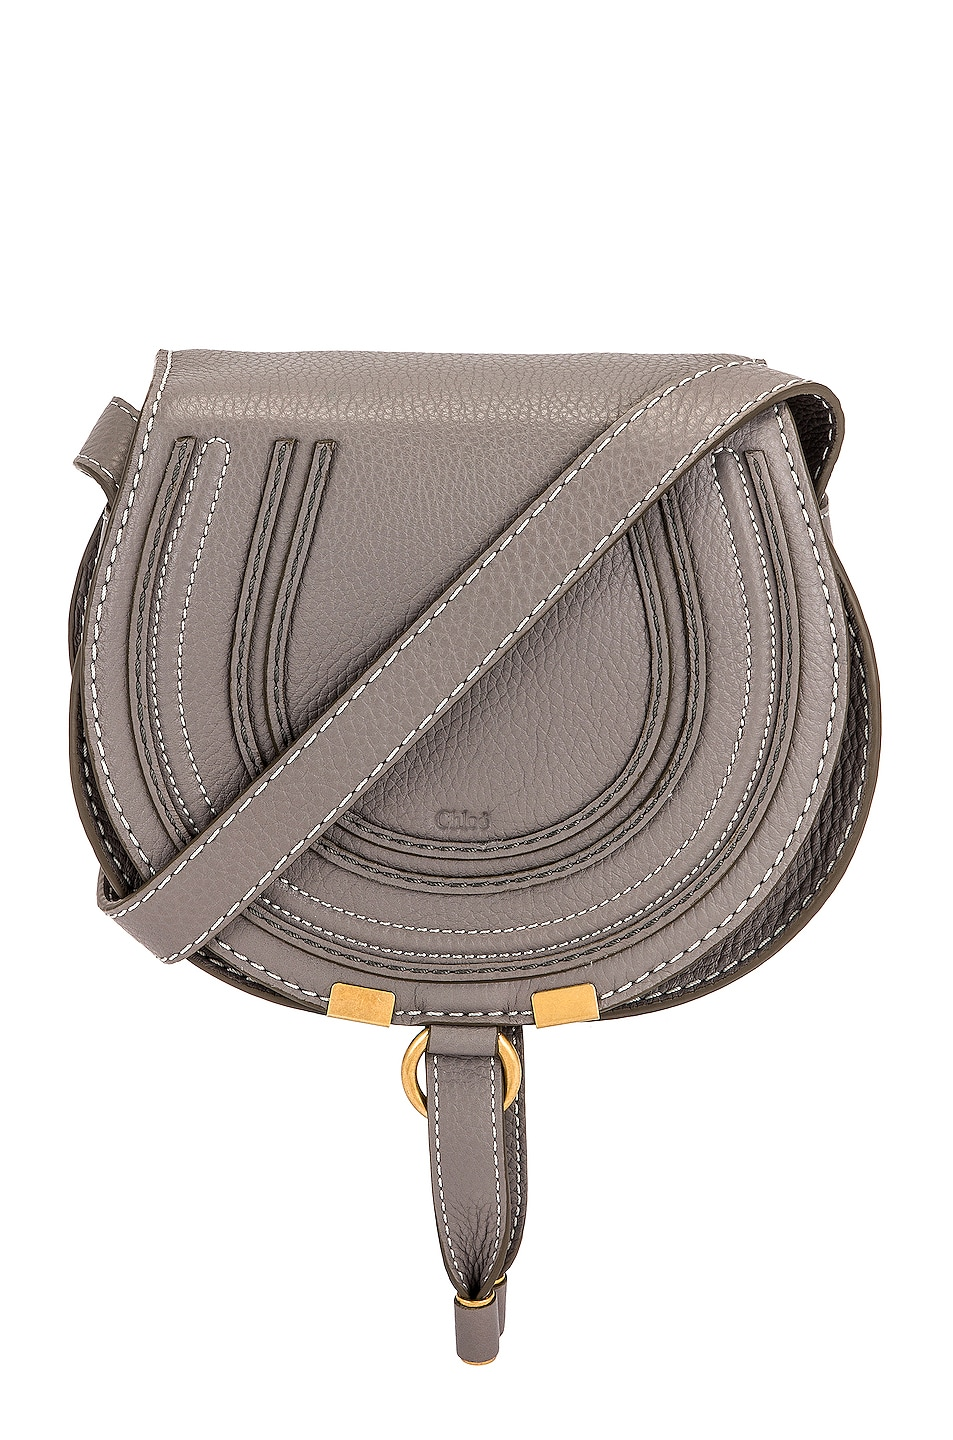 Image 1 of Chloe Small Marcie Grained Calfskin Saddle Bag in Cashmere Grey